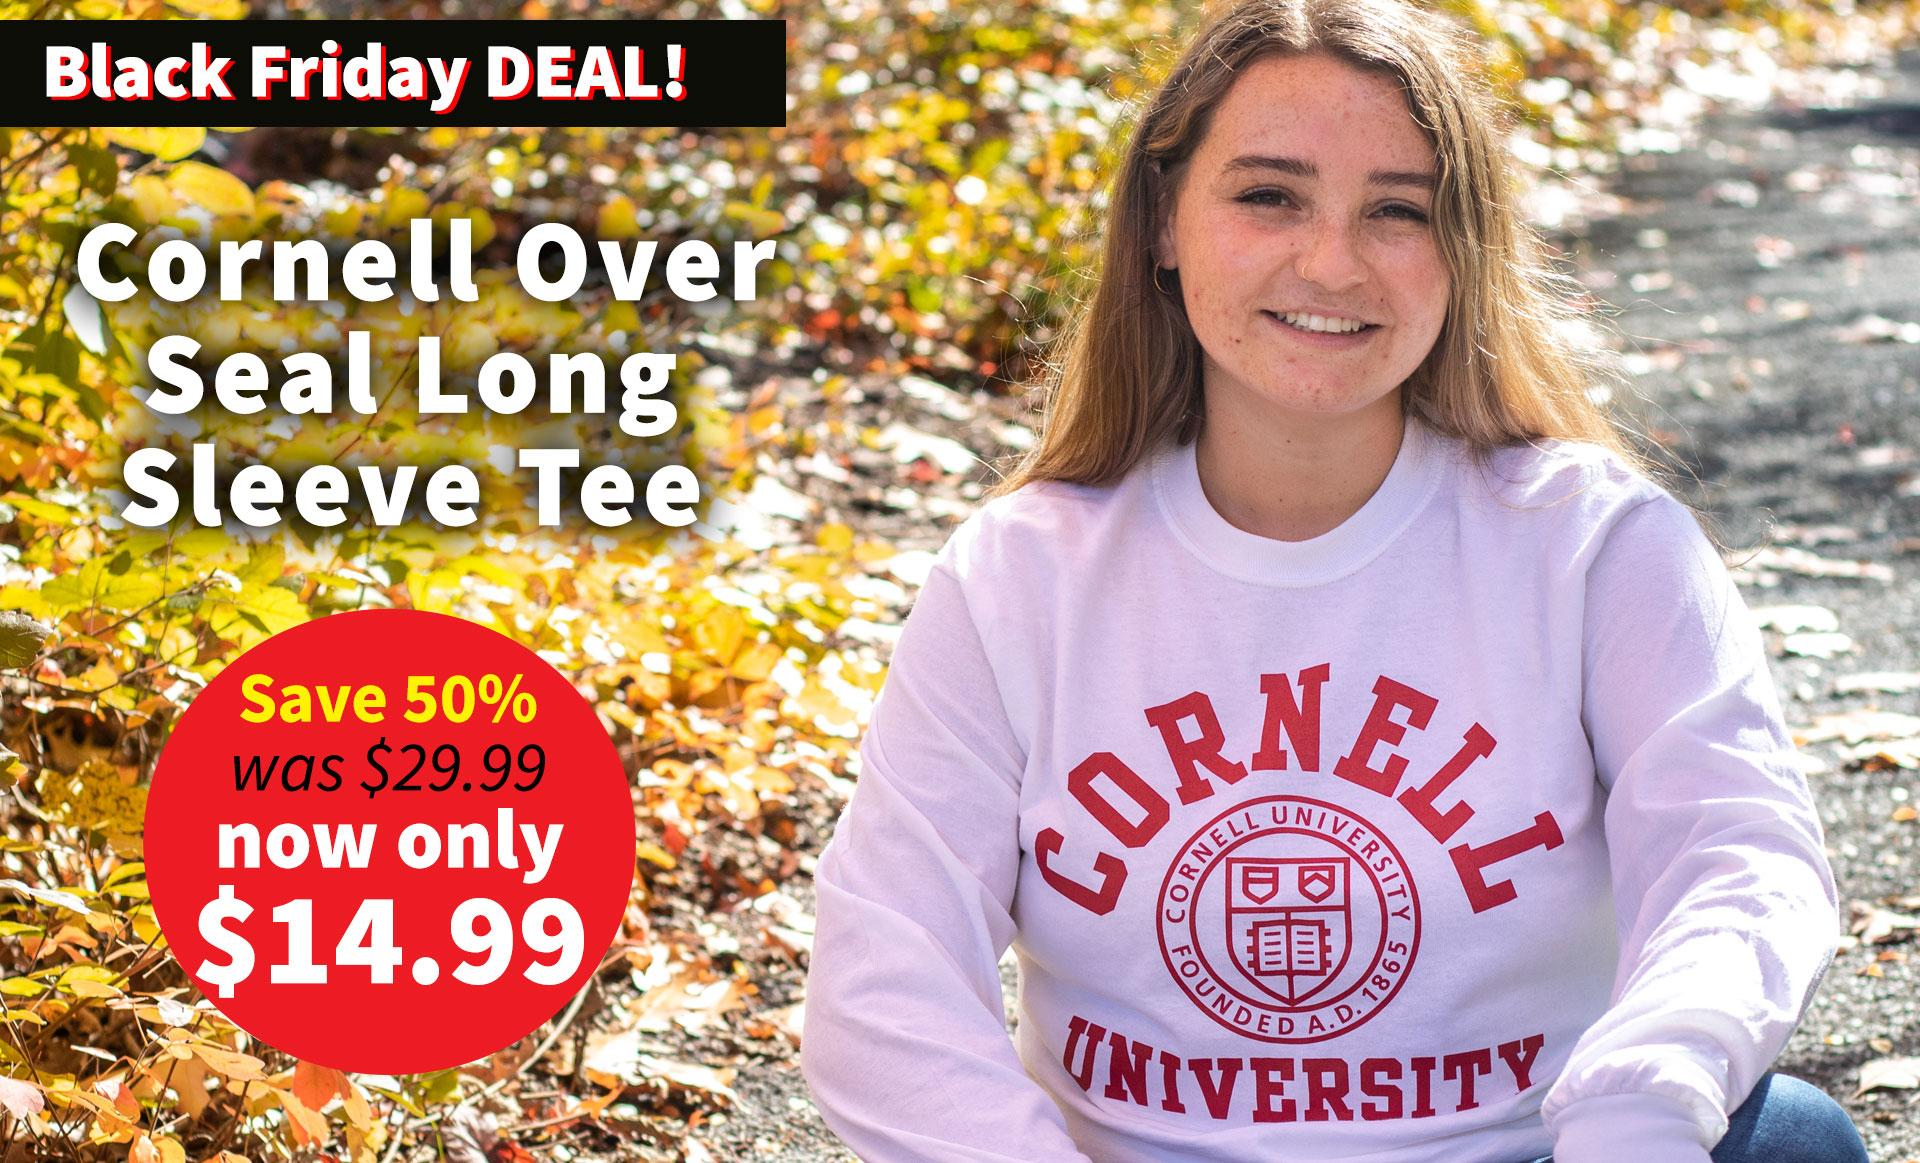 Unisex Cornell Seal Long Sleeve Tee - Now $14.99